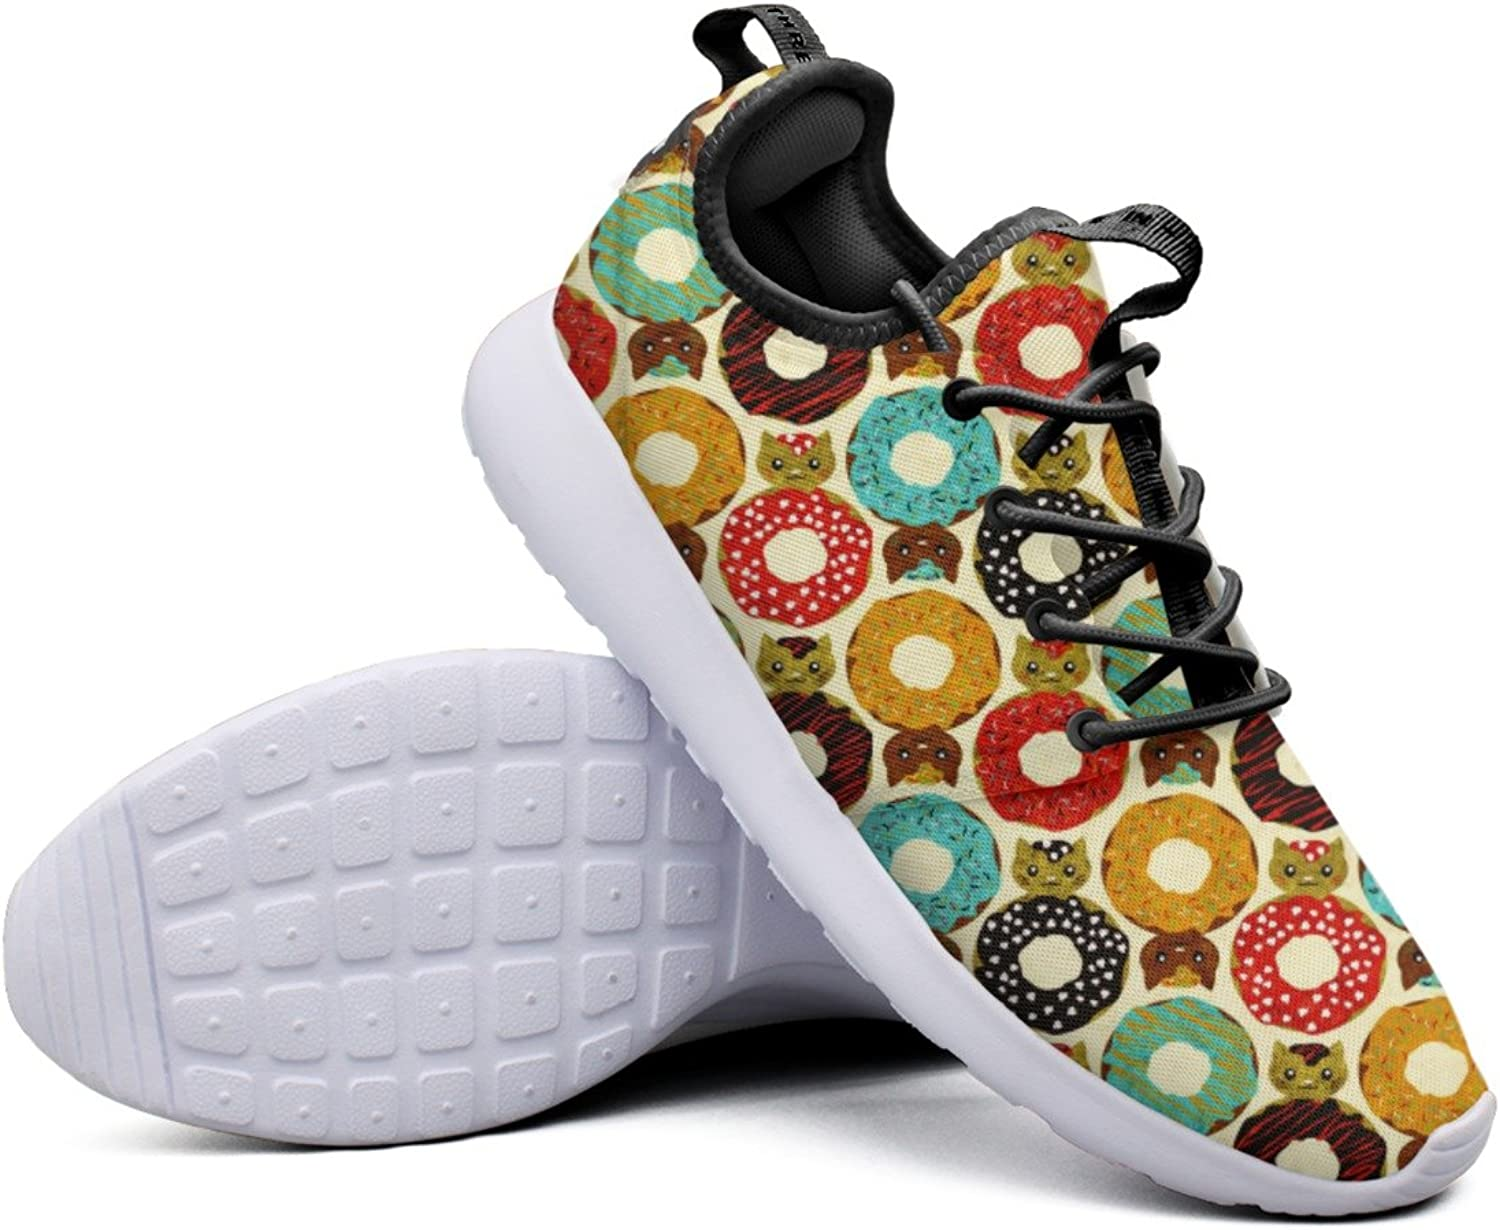 Fashion Sneakers shoes For Women Donut Cats Dunutcats Simple Lightweight Breathable Mesh Womens Sneakers